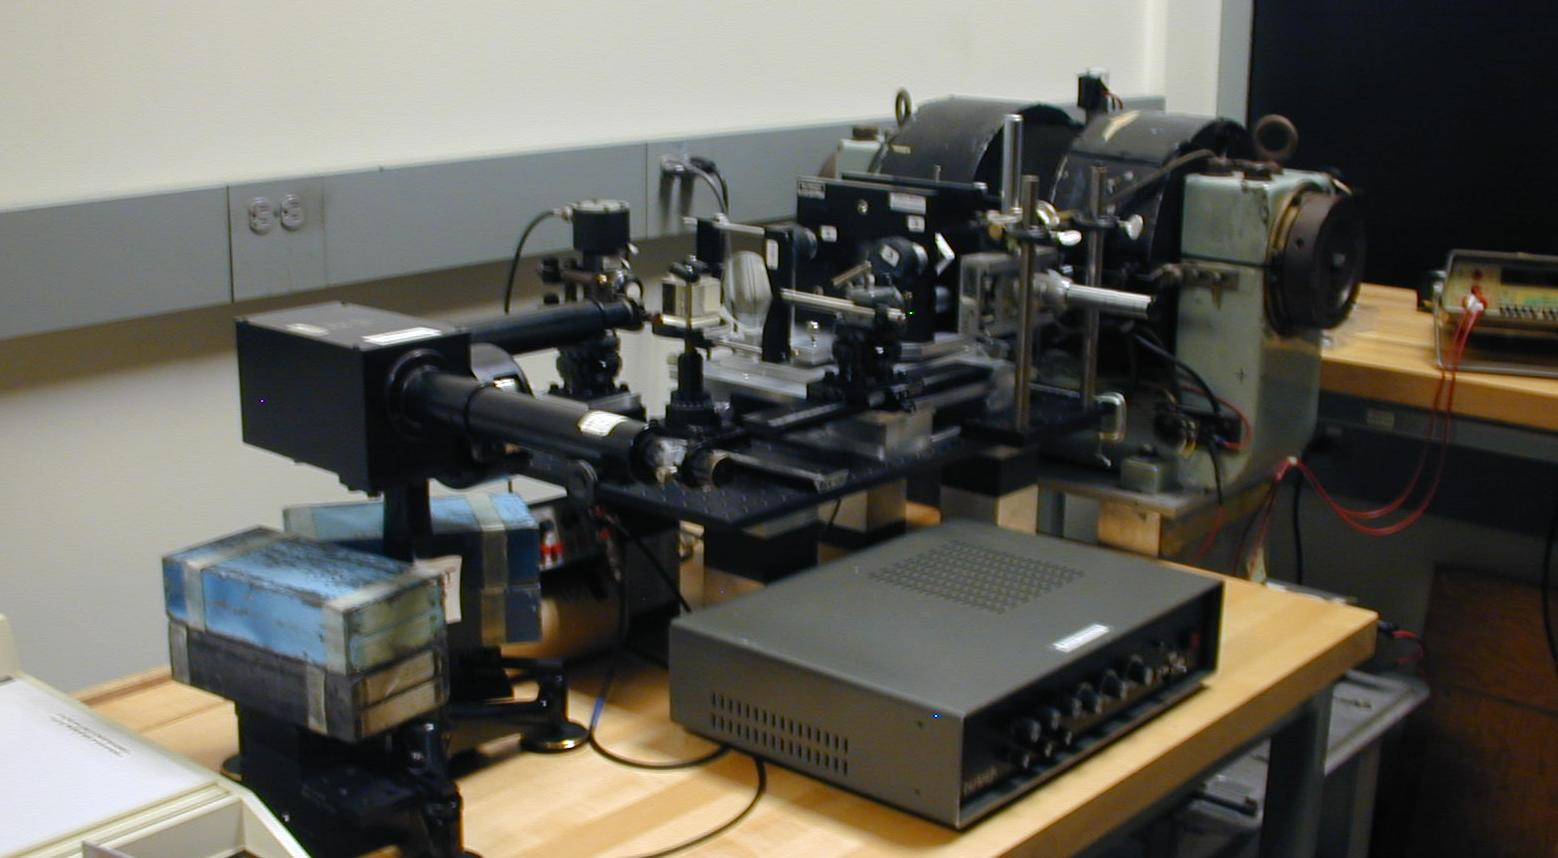 michelson interferometer lab report Michelson interferometer abstract a michelson interferometer, constructed by the student, is used to measure the wavelength of he-ne laser light and the index of refraction of a flat transparent sample references taylor, zafiratos and dubson, modern physics, second edition, section 15 pre-lab please do this section.